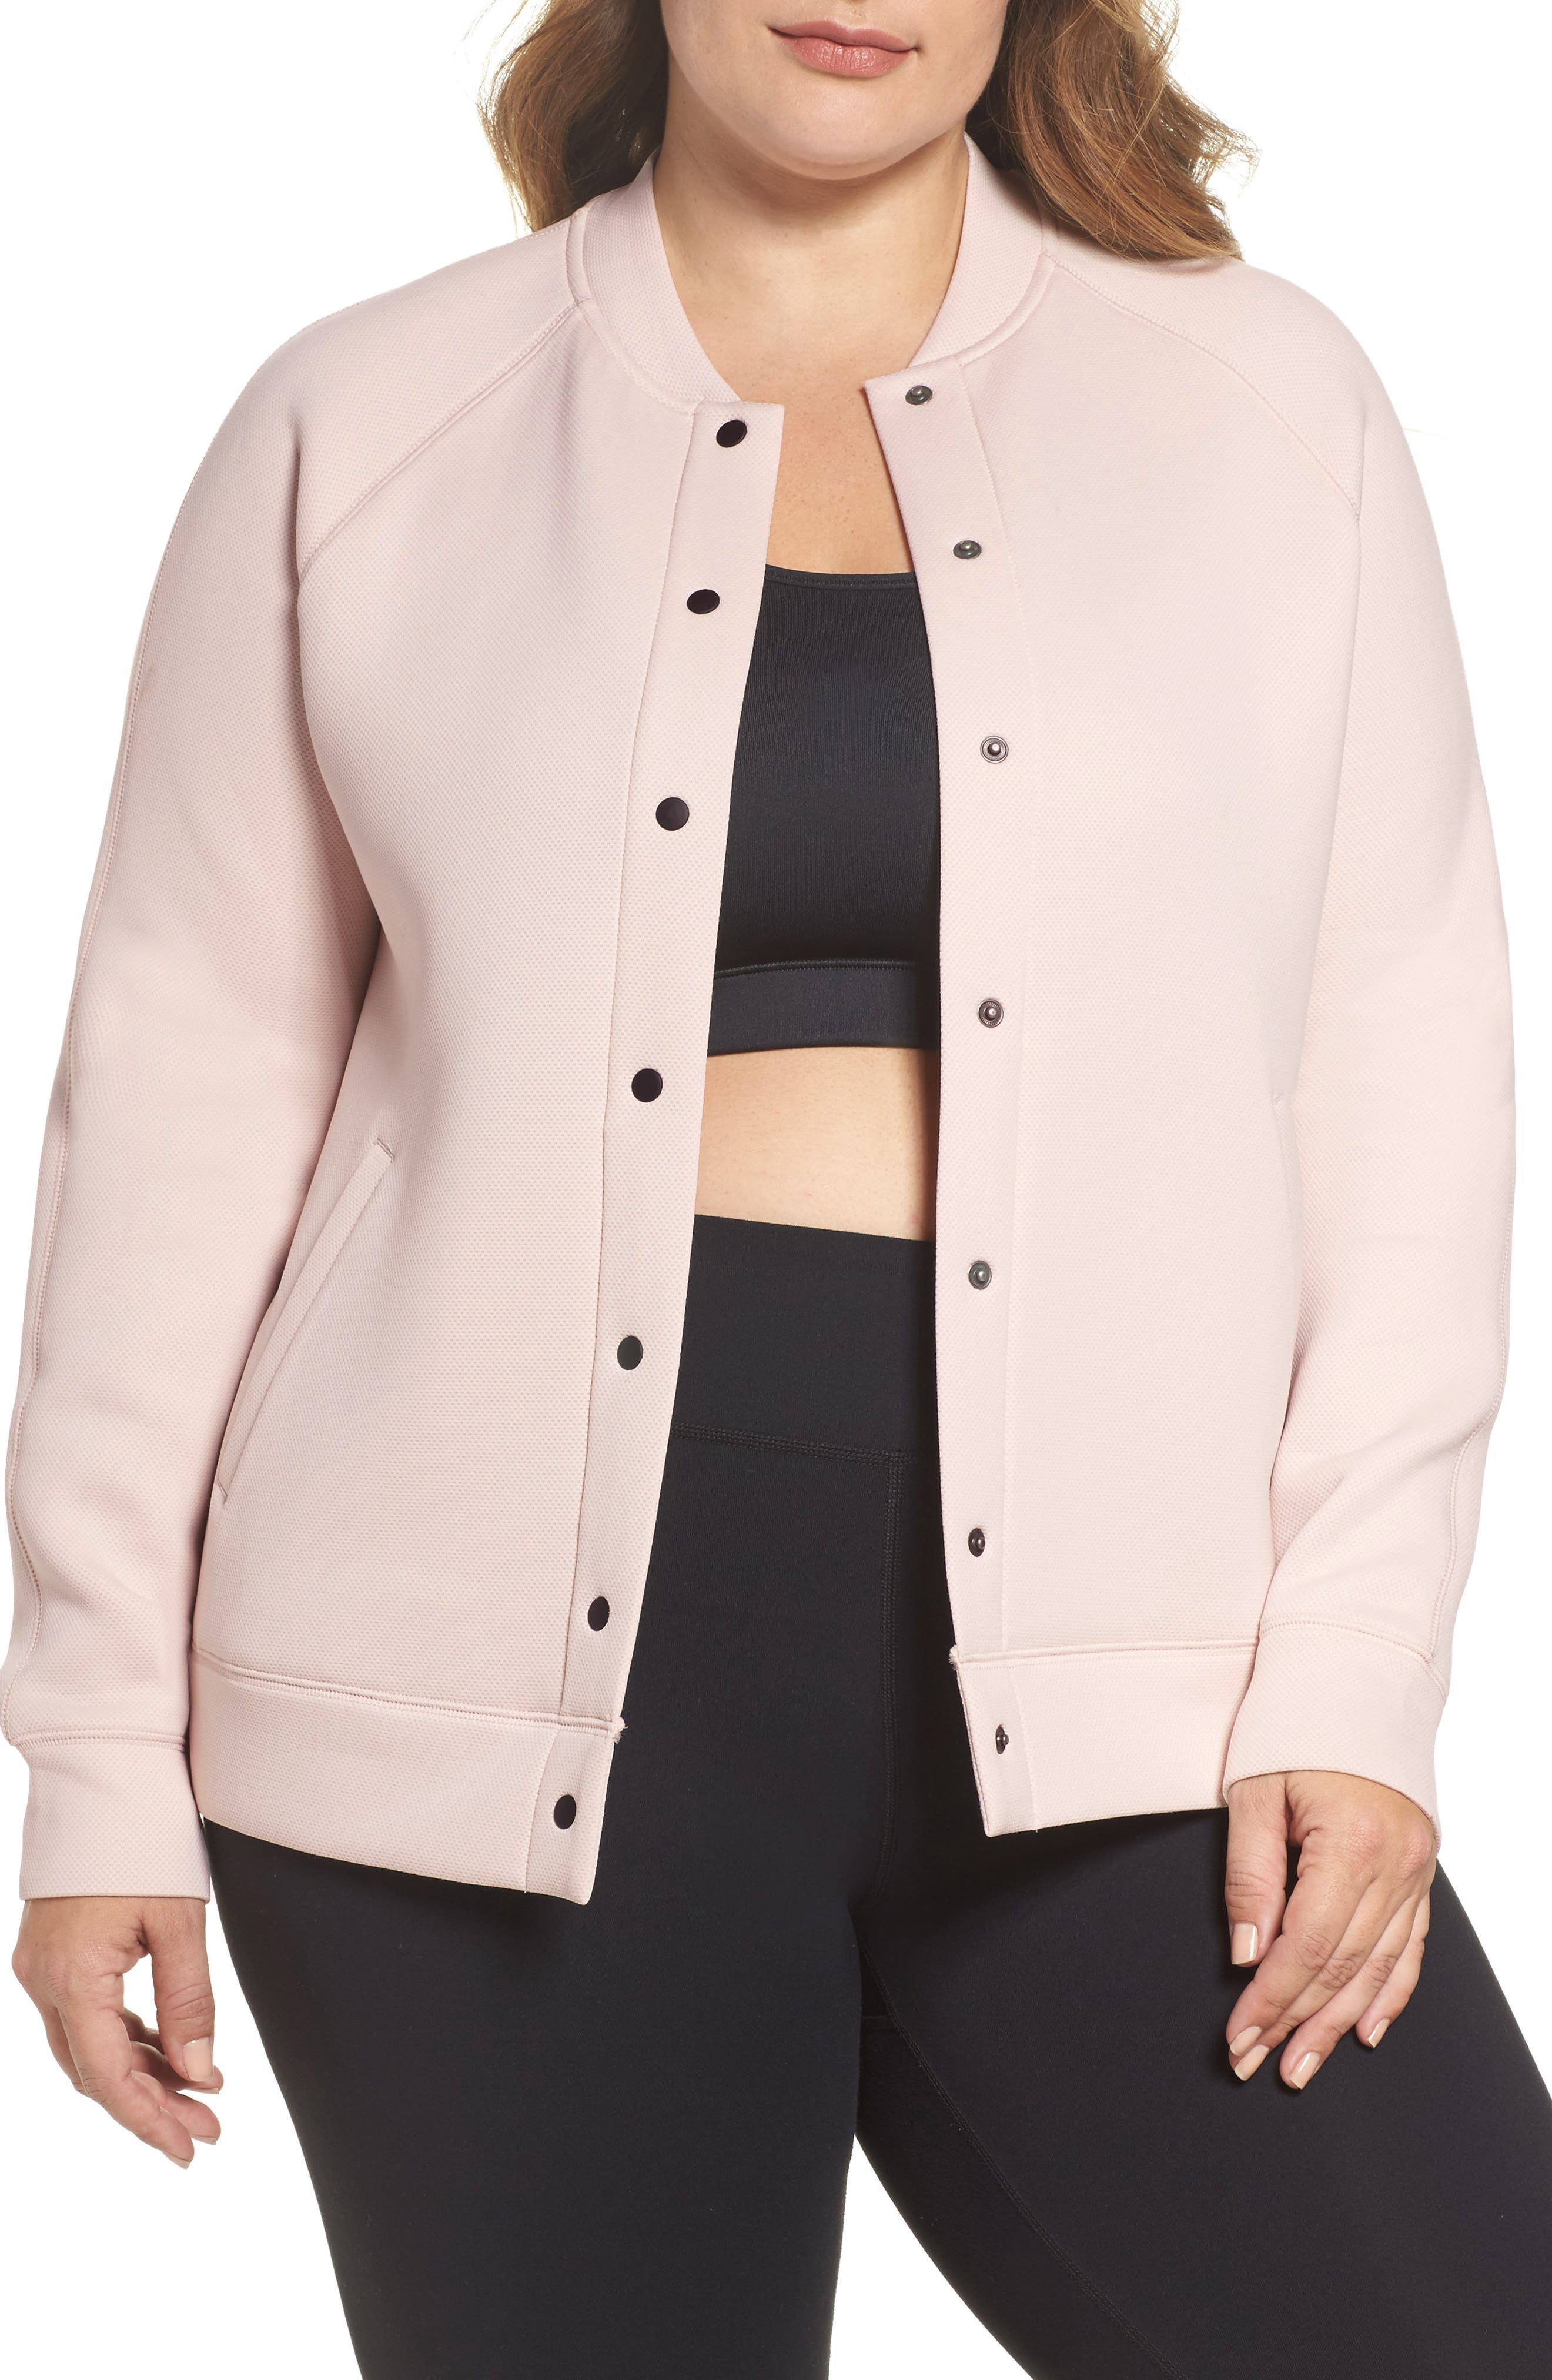 Arise Luxe Bomber Jacket,                         Main,                         color, 680